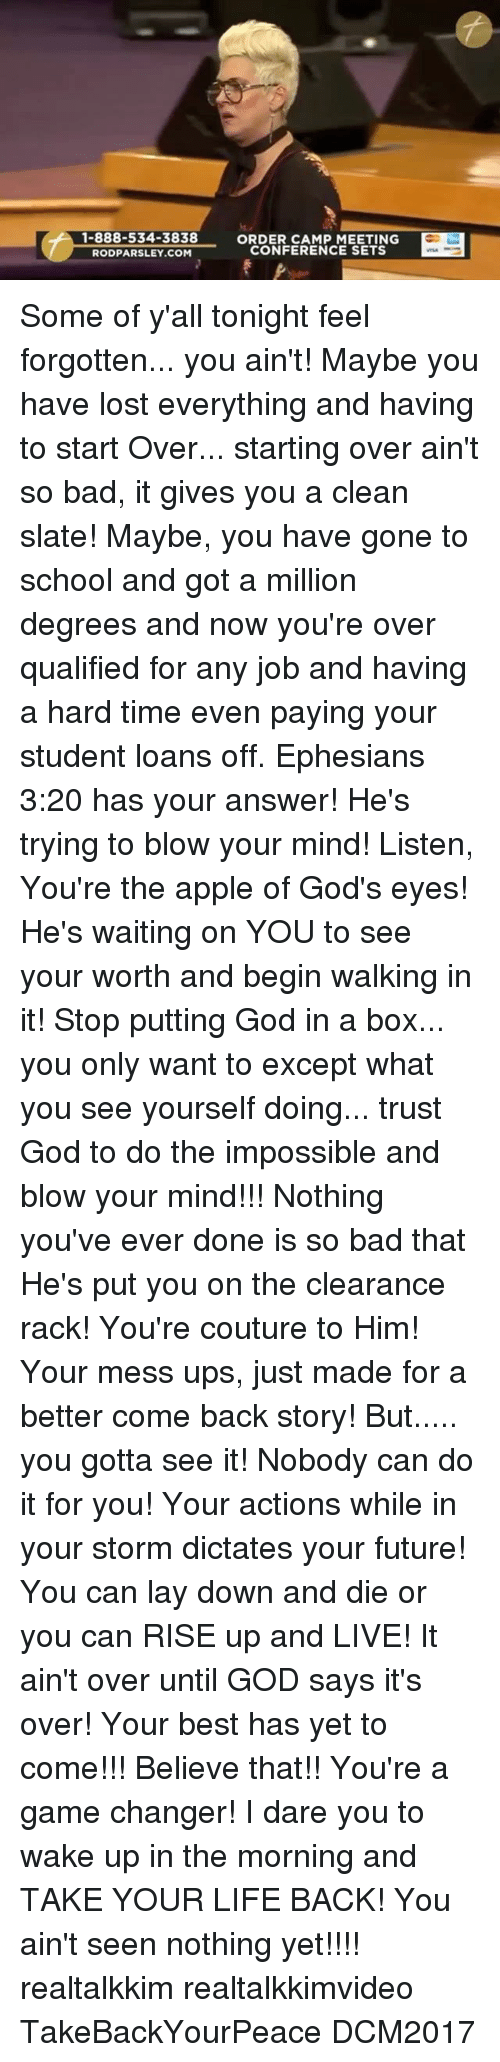 Apple, Bad, and Future: 1-888-534-3838  ORD NFERENCE SETING  ORDER CAMP MEETING  CONFERENCE SETS  RODPARSLEY.COM Some of y'all tonight feel forgotten... you ain't! Maybe you have lost everything and having to start Over... starting over ain't so bad, it gives you a clean slate! Maybe, you have gone to school and got a million degrees and now you're over qualified for any job and having a hard time even paying your student loans off. Ephesians 3:20 has your answer! He's trying to blow your mind! Listen, You're the apple of God's eyes! He's waiting on YOU to see your worth and begin walking in it! Stop putting God in a box... you only want to except what you see yourself doing... trust God to do the impossible and blow your mind!!! Nothing you've ever done is so bad that He's put you on the clearance rack! You're couture to Him! Your mess ups, just made for a better come back story! But..... you gotta see it! Nobody can do it for you! Your actions while in your storm dictates your future! You can lay down and die or you can RISE up and LIVE! It ain't over until GOD says it's over! Your best has yet to come!!! Believe that!! You're a game changer! I dare you to wake up in the morning and TAKE YOUR LIFE BACK! You ain't seen nothing yet!!!! realtalkkim realtalkkimvideo TakeBackYourPeace DCM2017